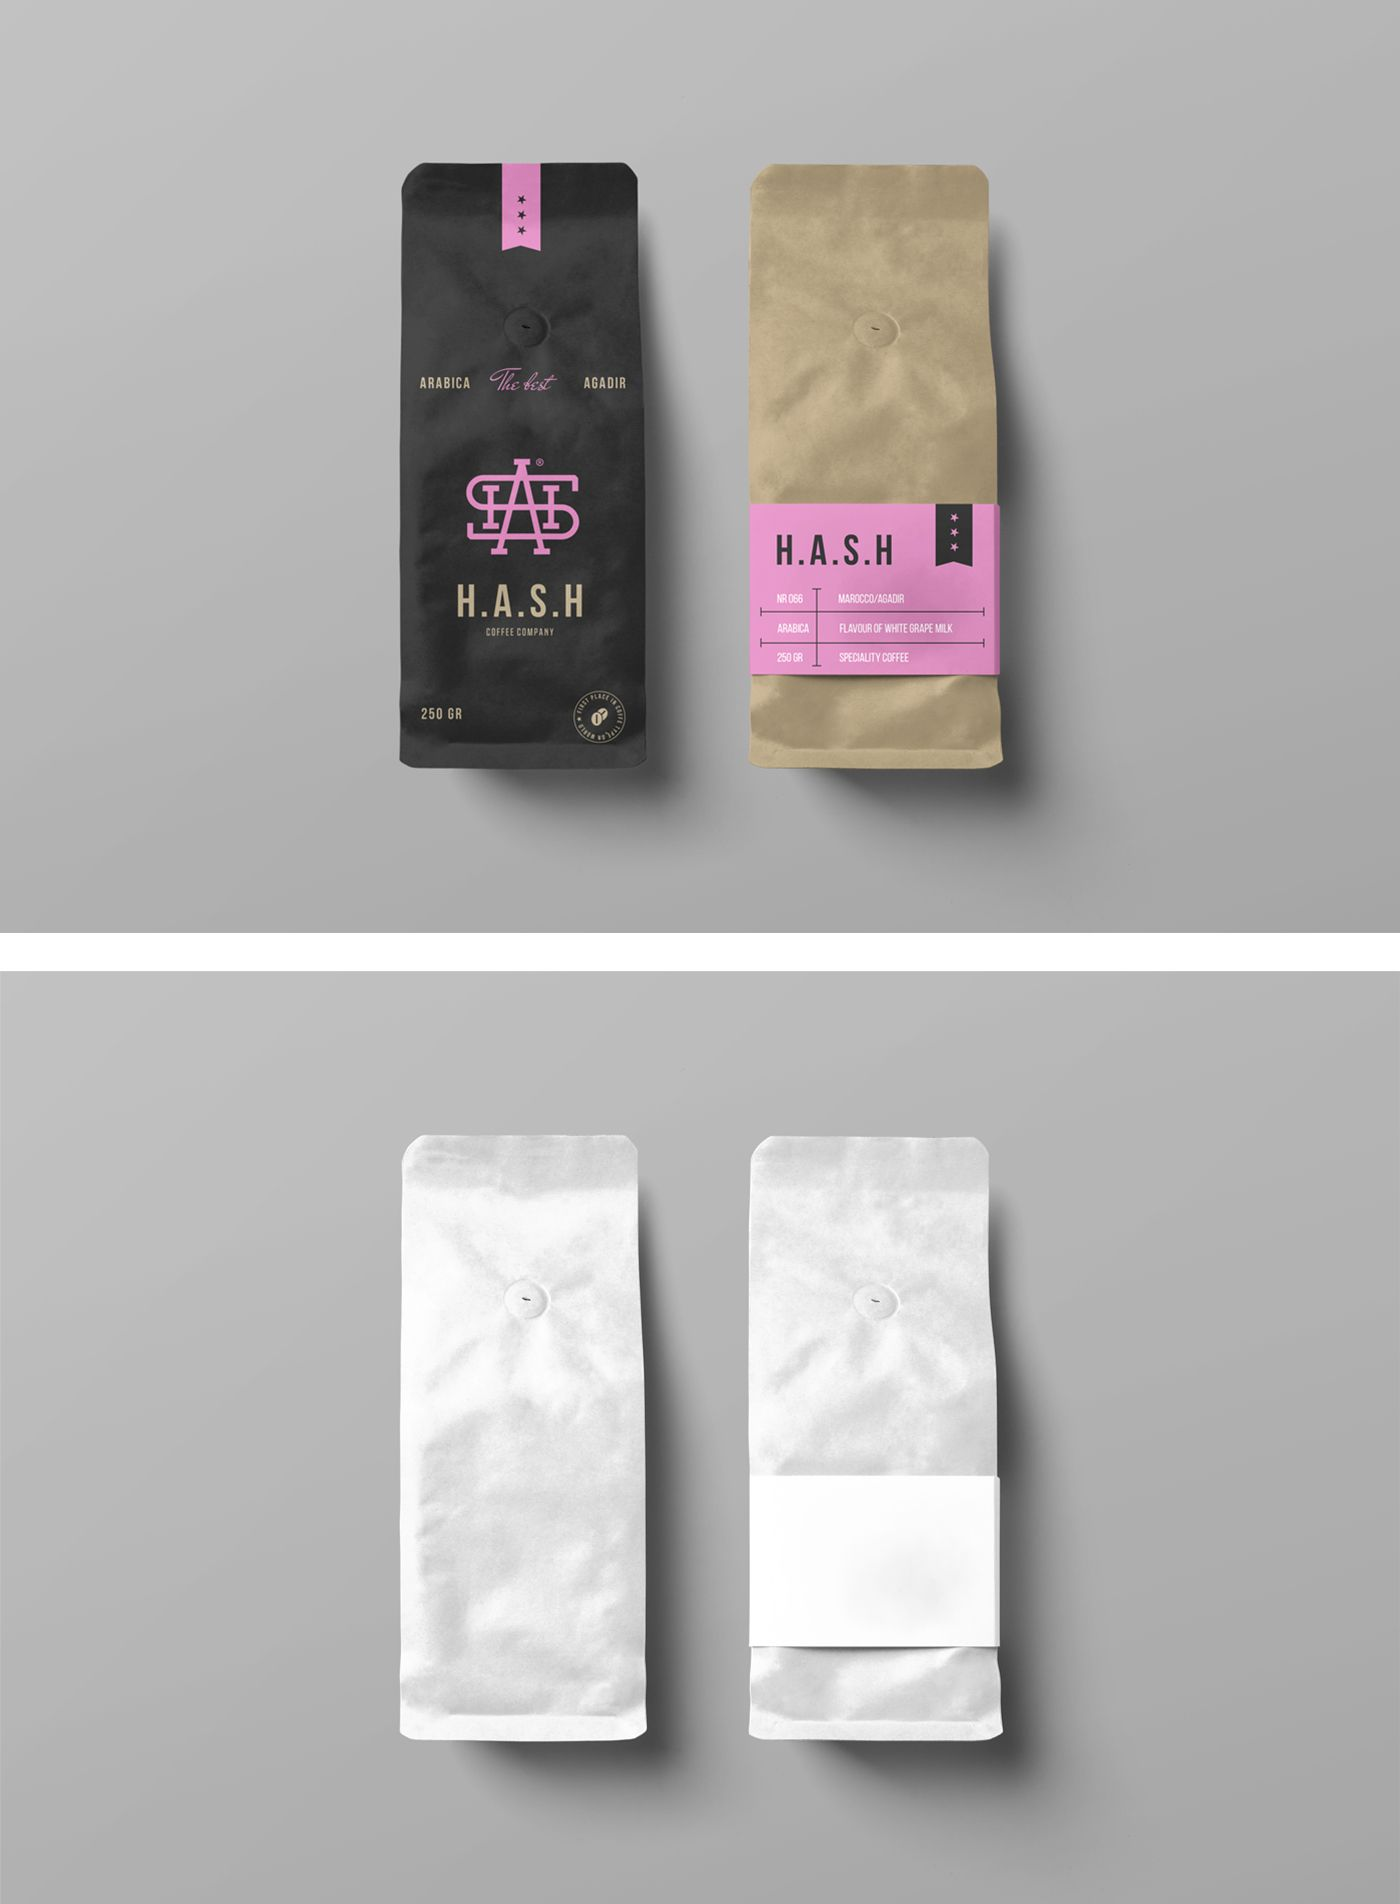 Download Coffee Bags Mockups Mr Mockup Graphic Design Freebies Bag Mockup Graphic Design Freebies Design Freebie